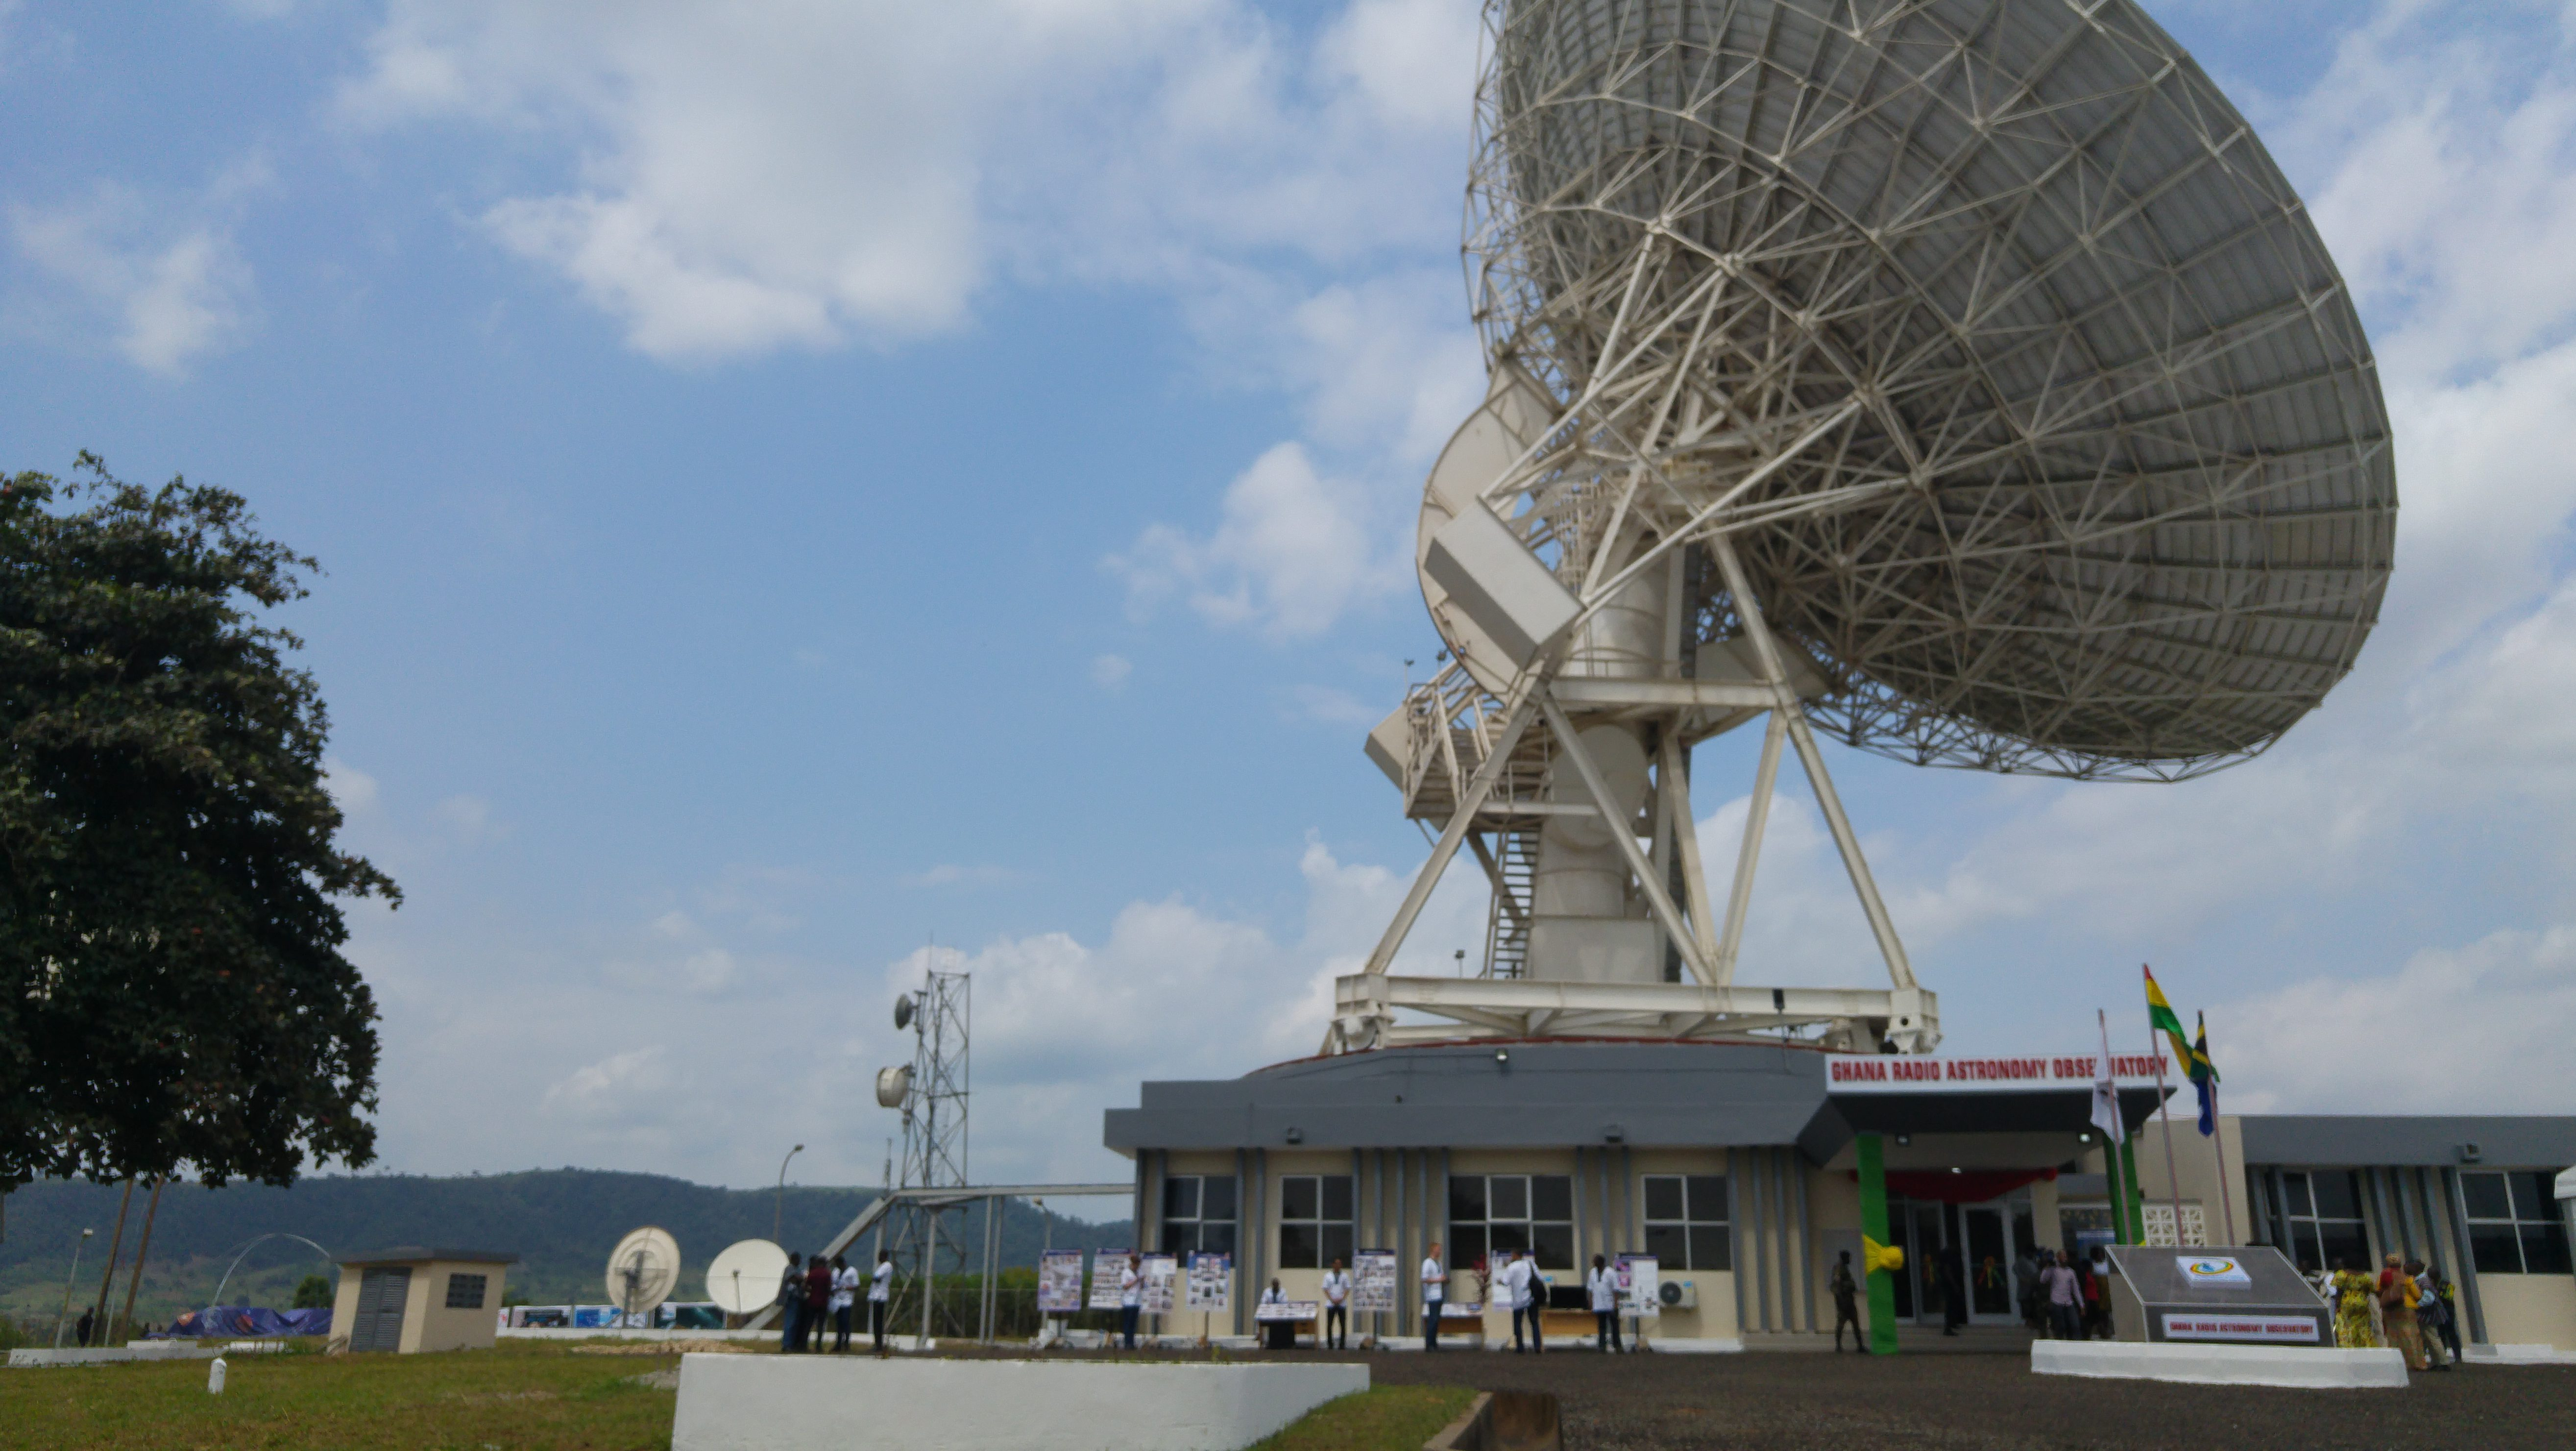 Ghana launched its first radio astronomy observatory on Thursday in an effort to widen knowledge of African skies, catalyze skills development, and attract scientists.